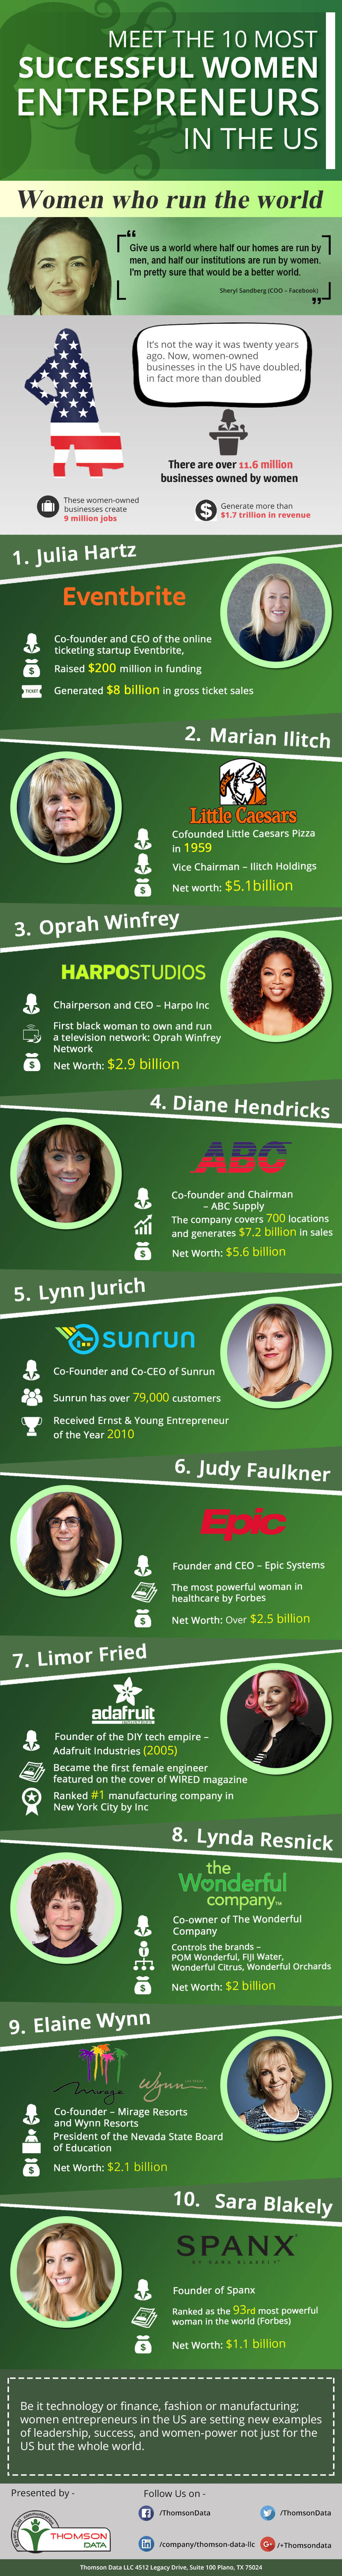 Meet the 10 Most Successful Women Entrepreneurs in the US [Infographic]